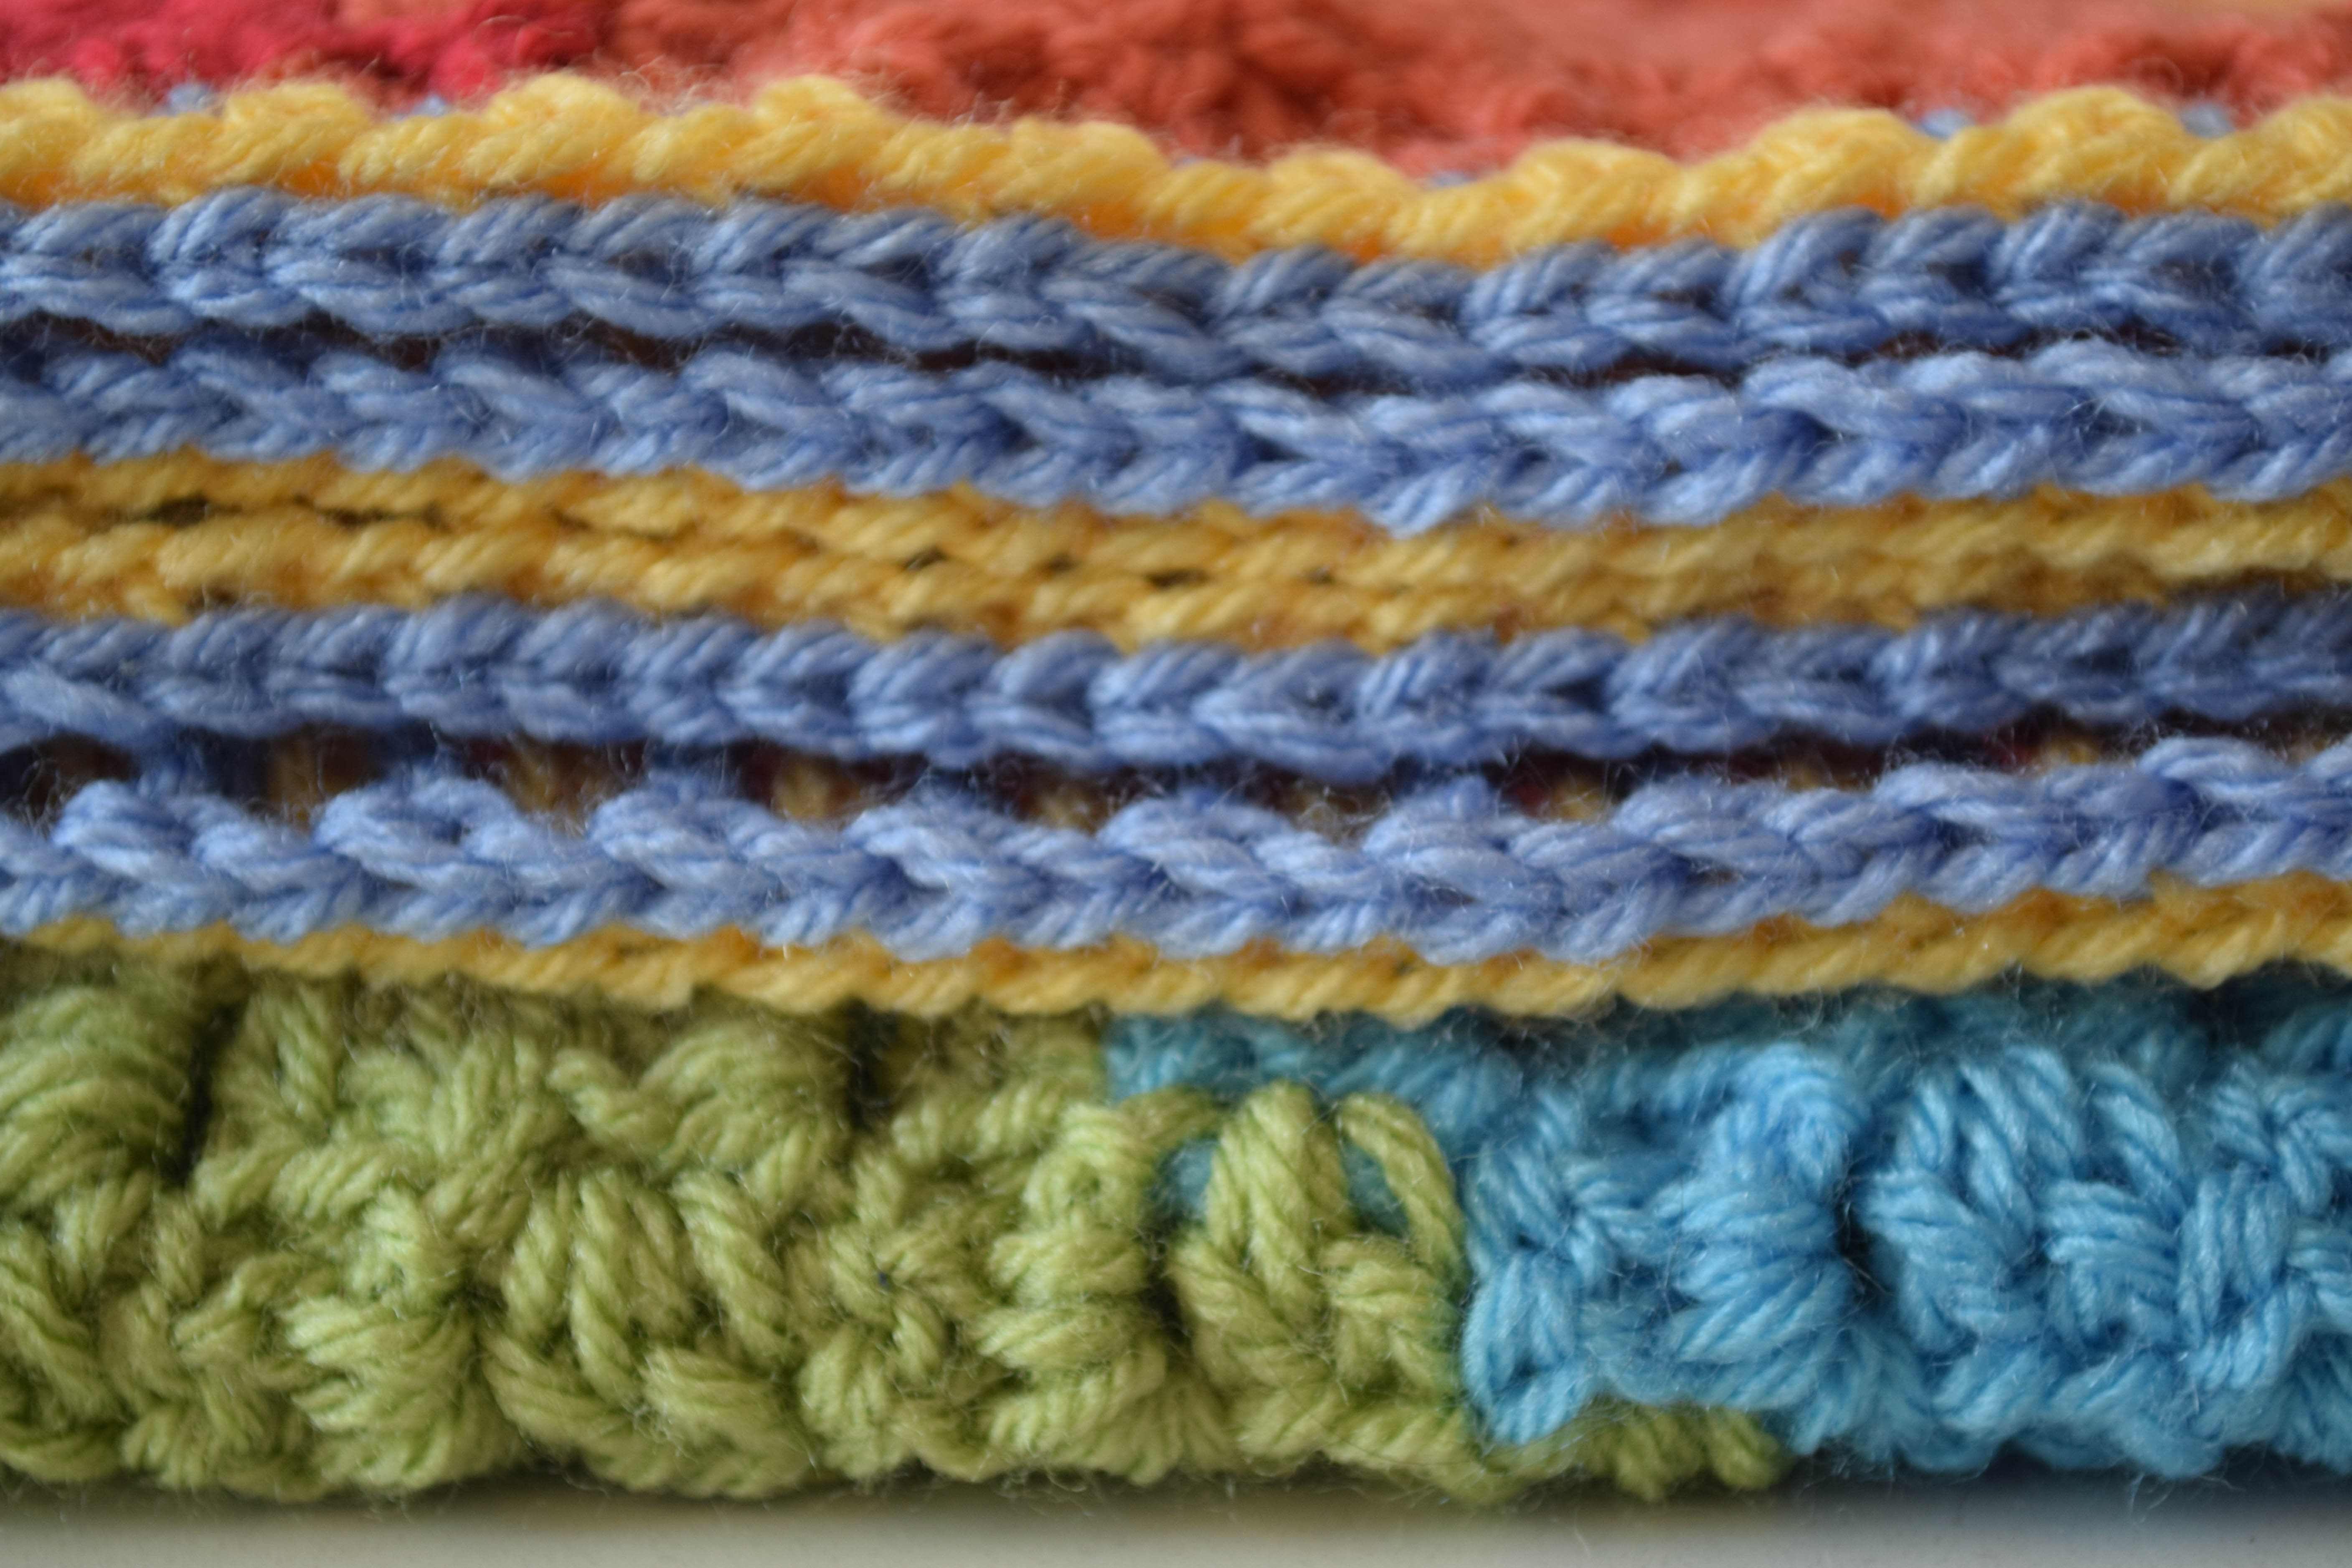 Knitting Pattern For Rainbow Blanket : The Stunningly Beautiful Crochet Baby Blanket You Need in ...